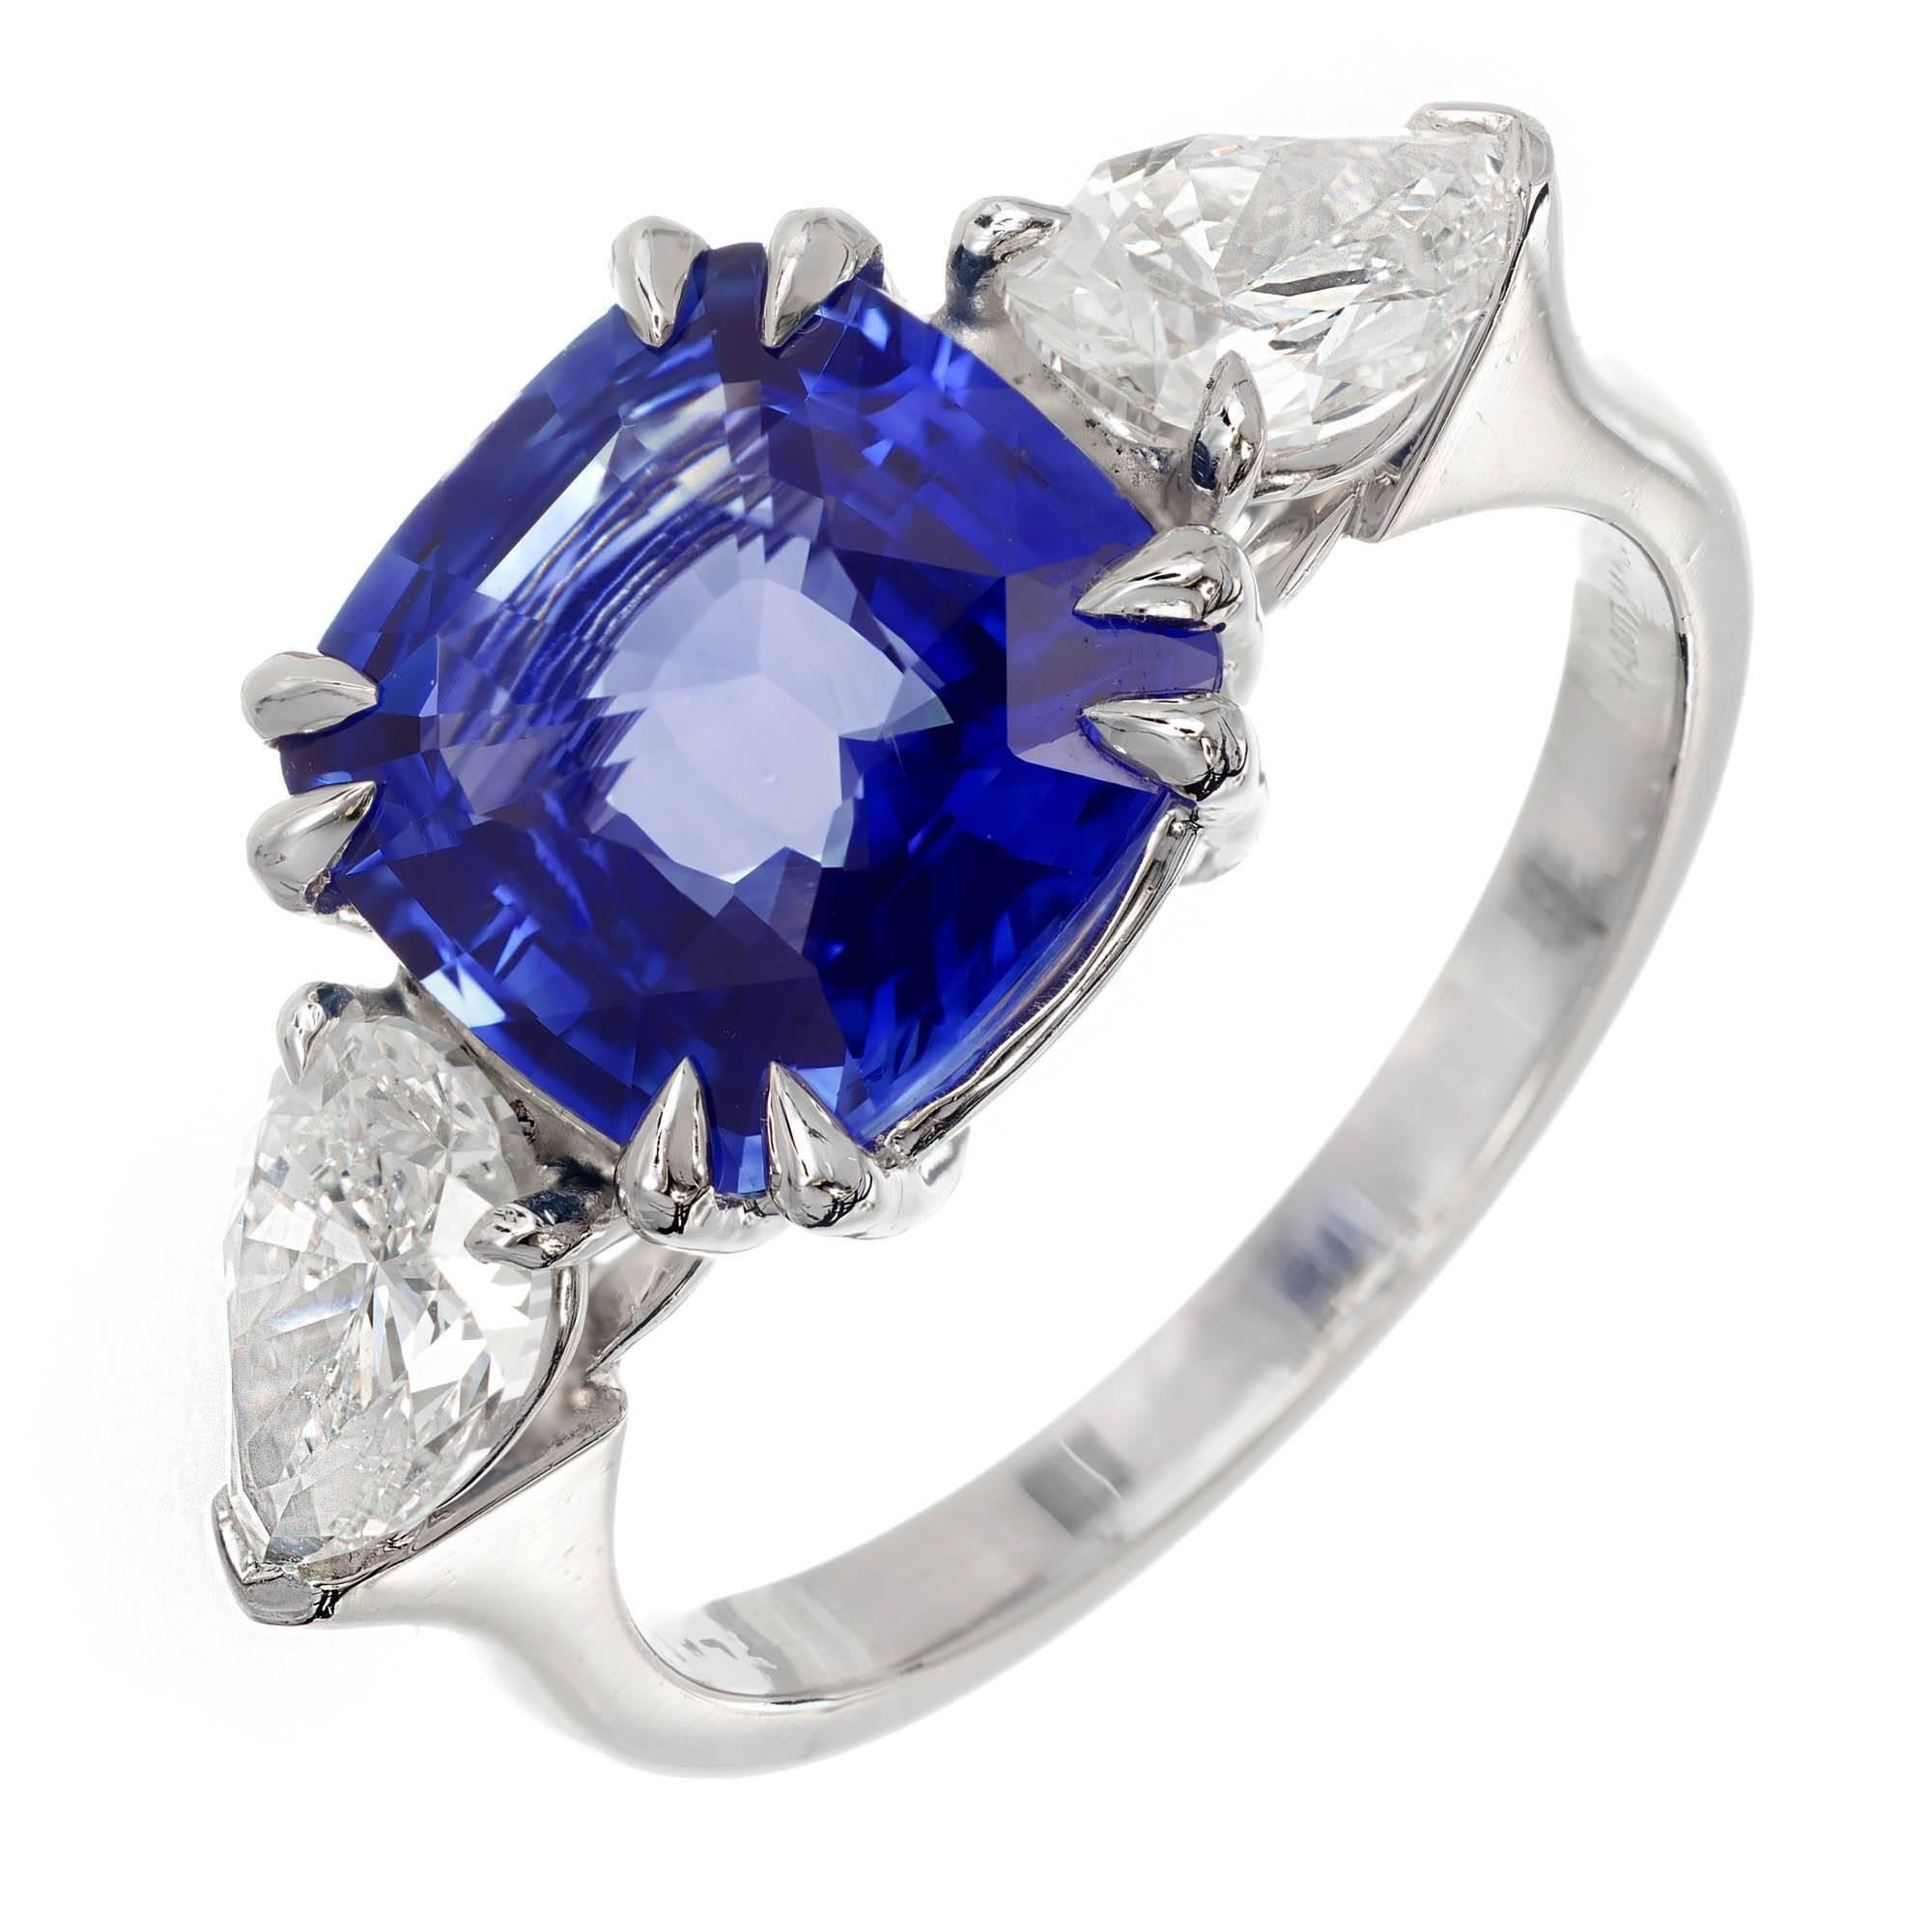 cn nobel sapphire jewellery diamond charles trilliant and rings southampton bournemouth cut cushion stone ring engagement